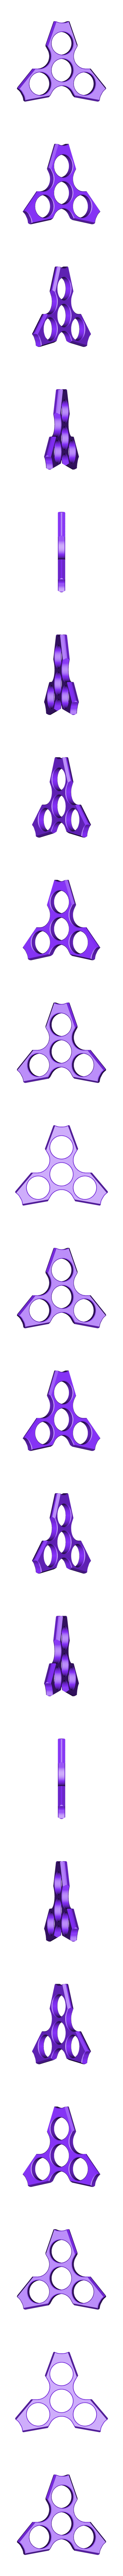 Spinner_Ninja.stl Download free STL file Some Hand Spinners • 3D printing object, 87squirrels